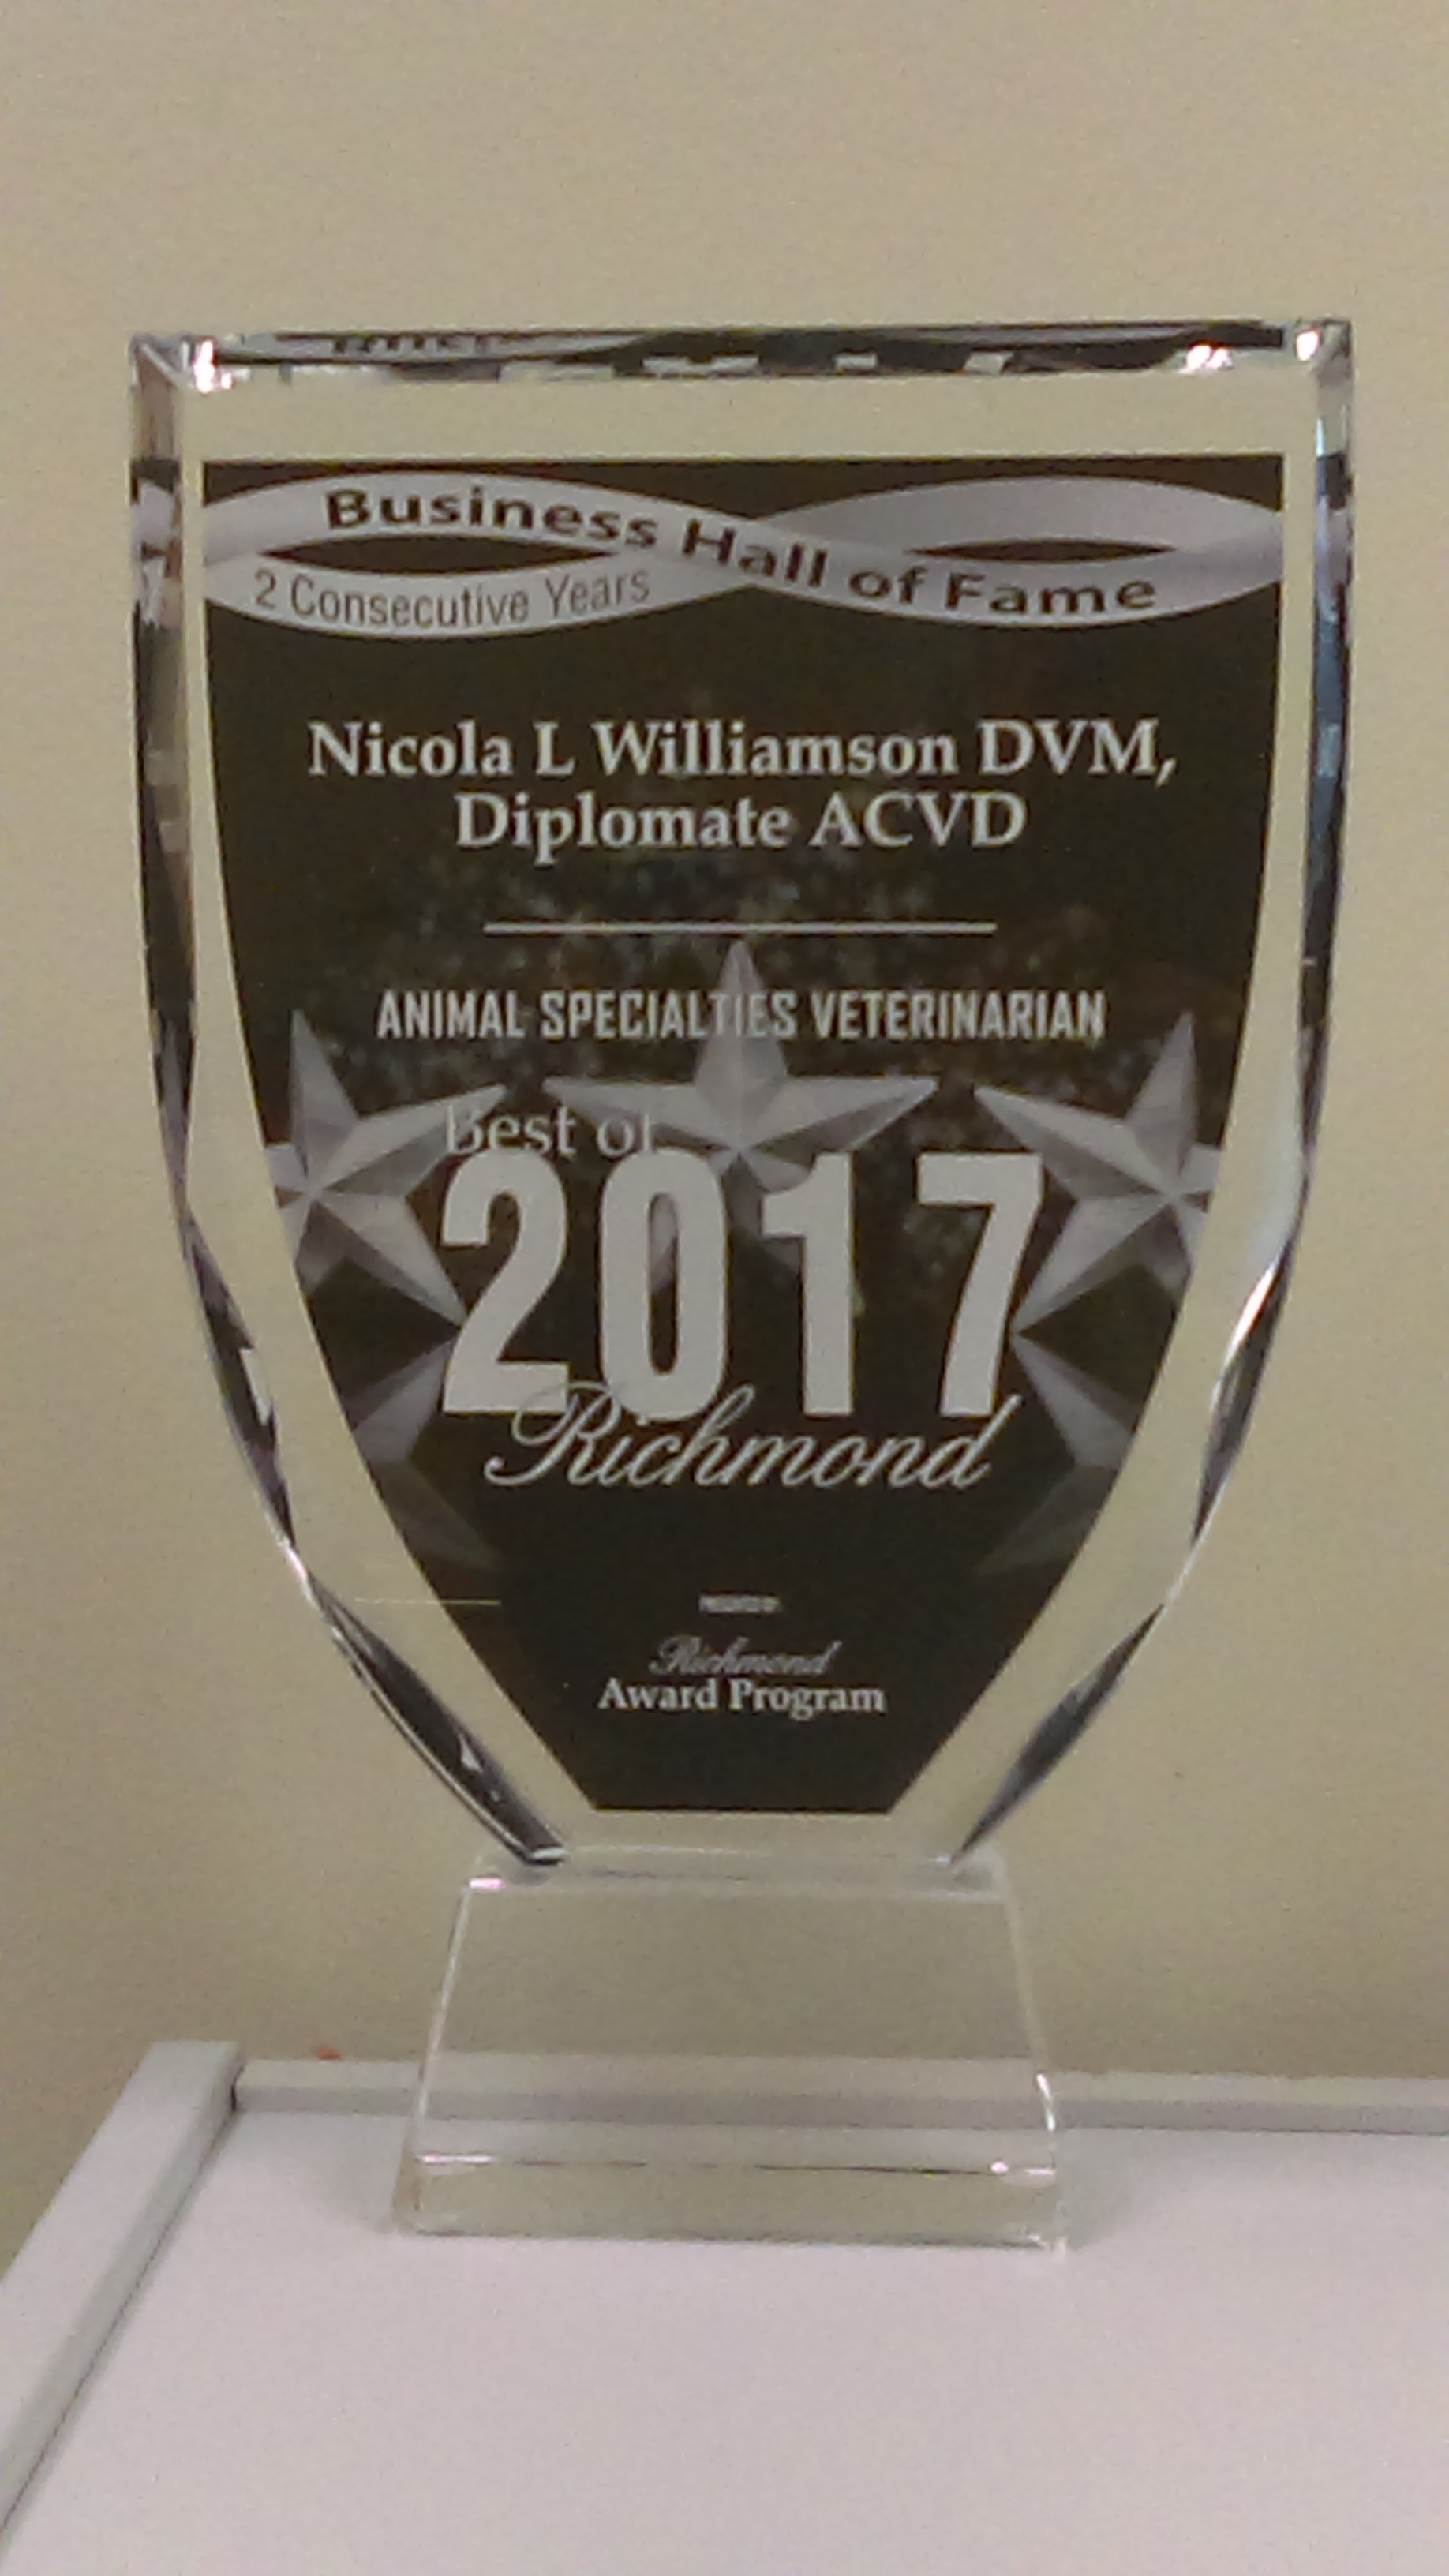 2017 Business Hall of Fame Award - 2 Consecutive years